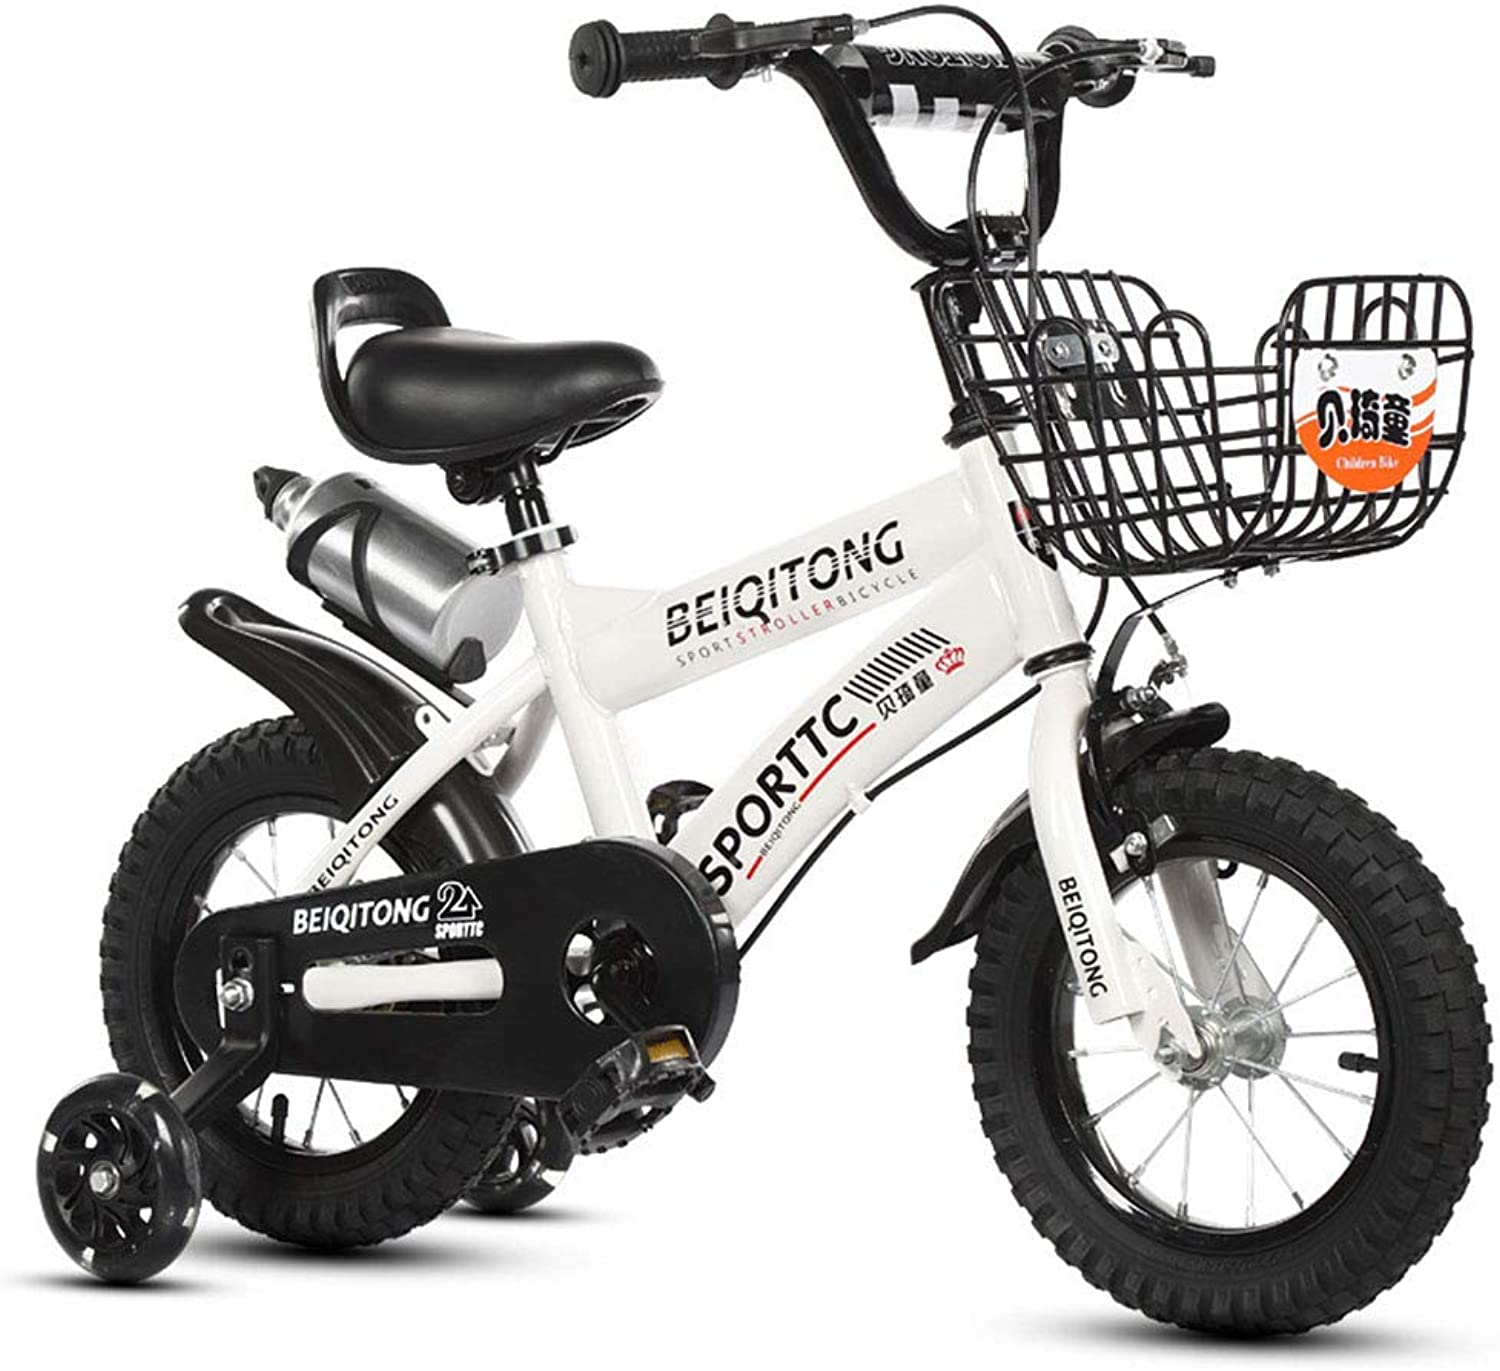 Kids bike 12 inch Boys and Girls  alloy kickstand   V-brake and backpedal brake as from 2 years   12  BMX Edition 2019